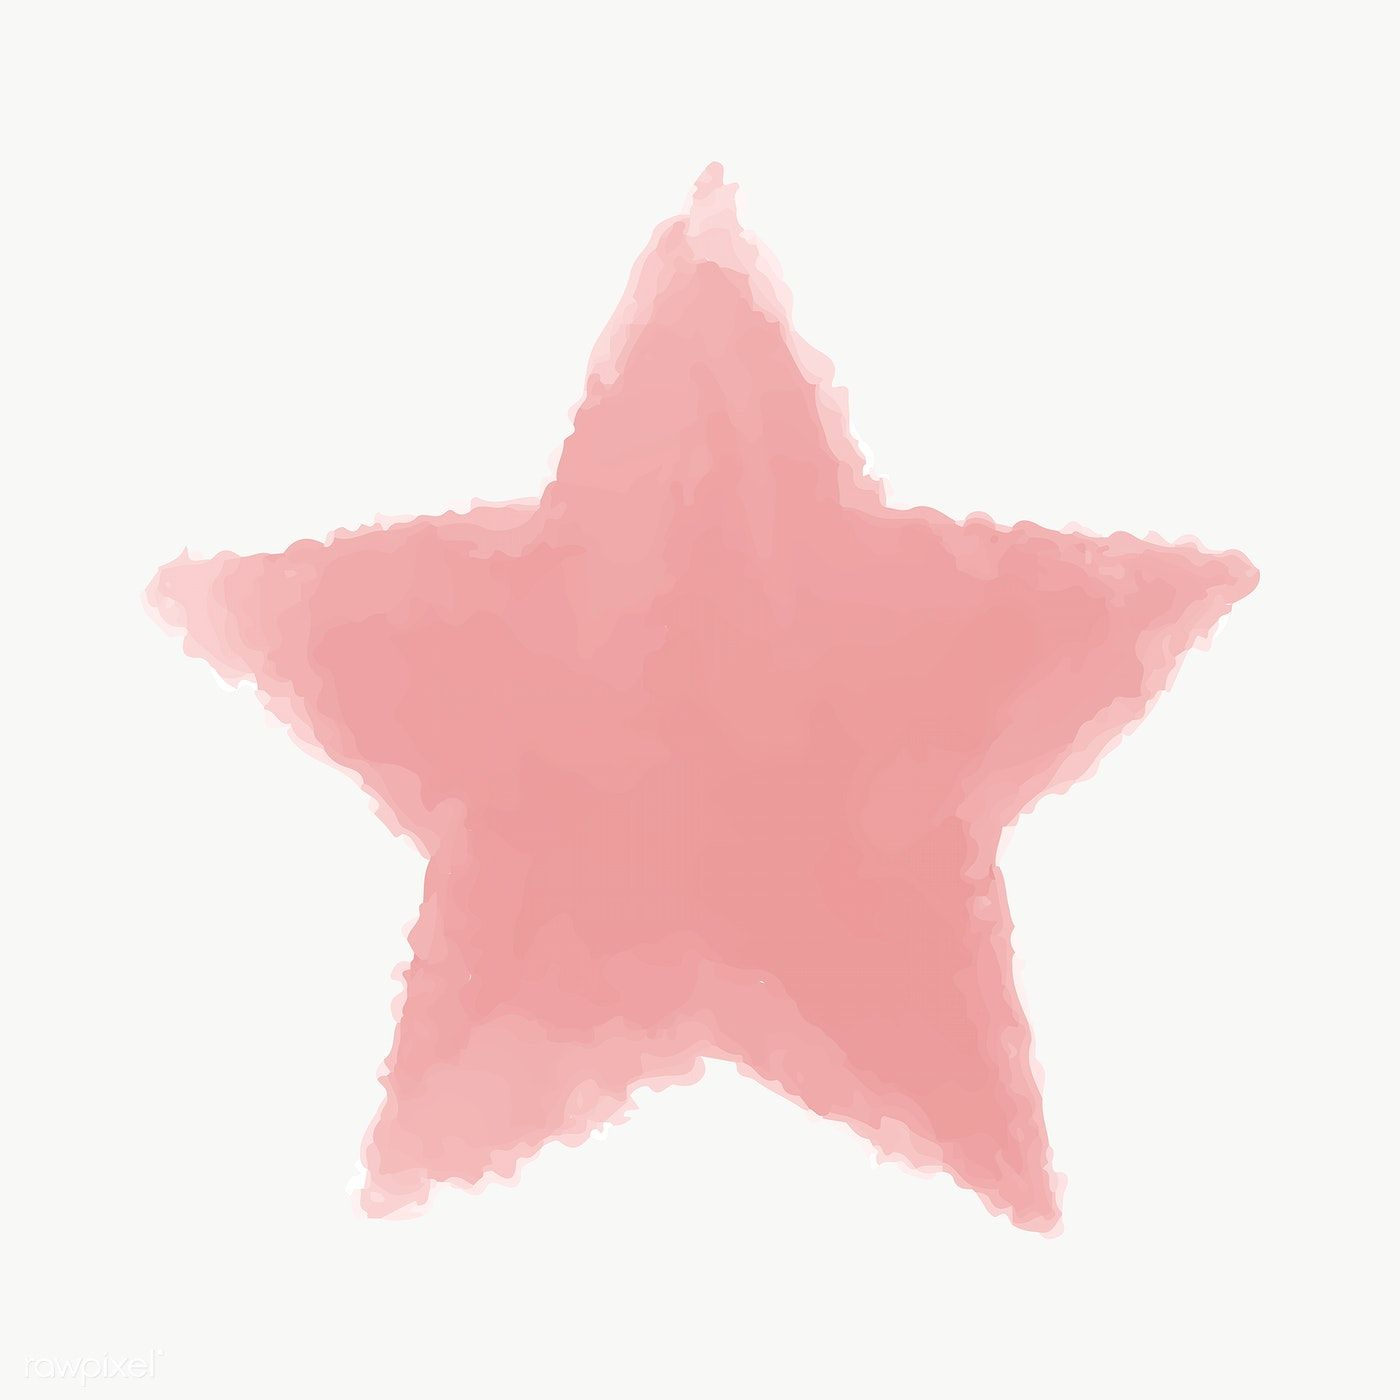 Red Watercolor Star Geometric Transparent Png Free Image By Rawpixel Com Ningzk V Geometric Star Star Illustration Watercolor Heart